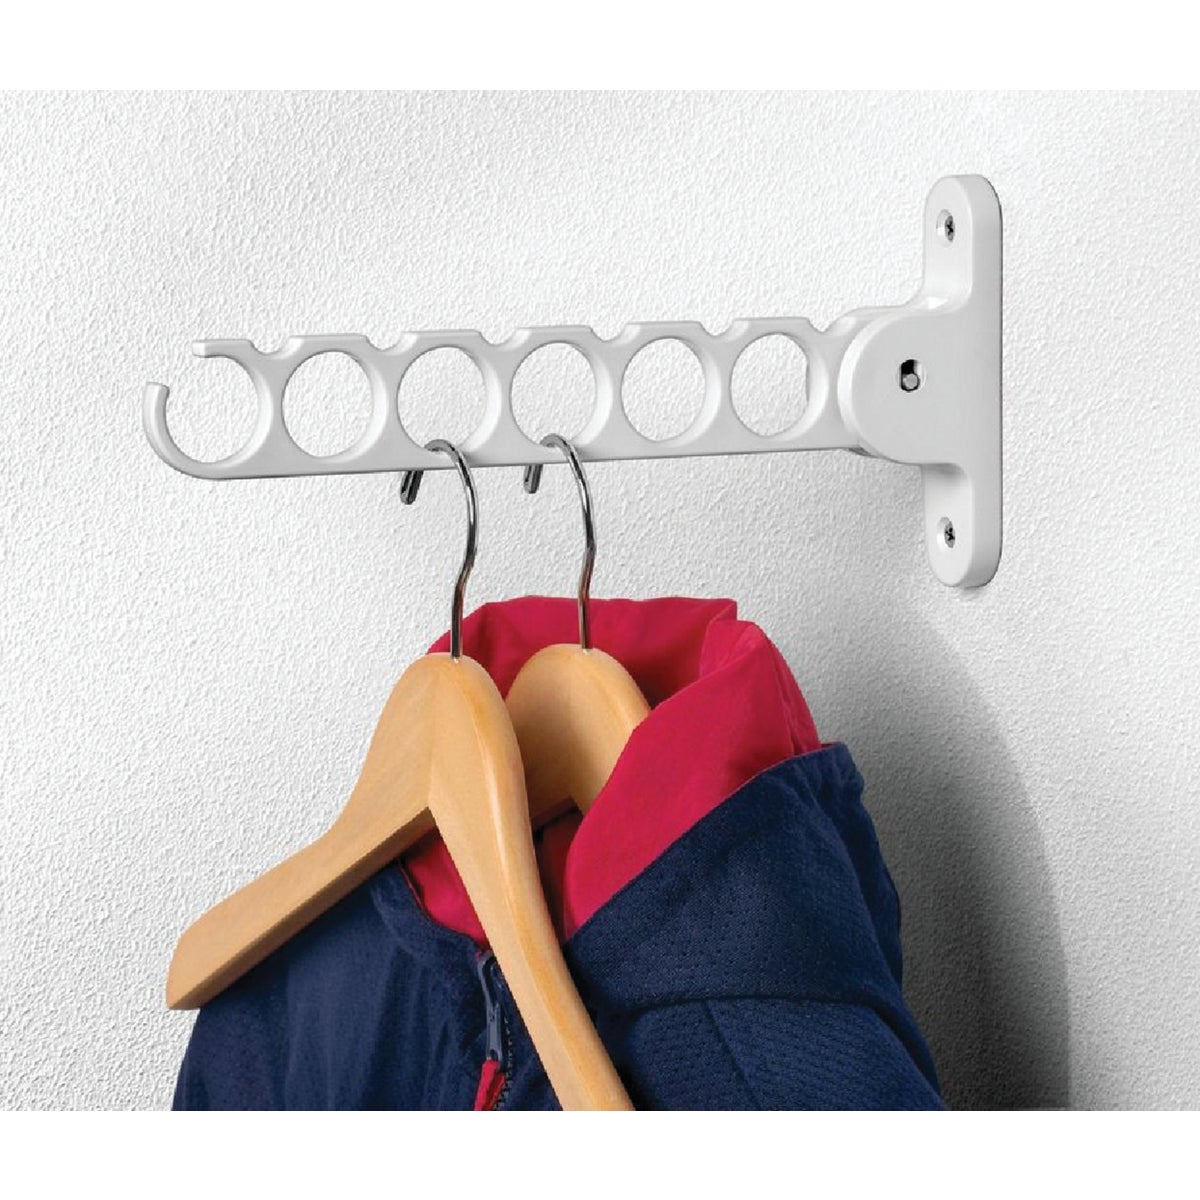 WHITE HANGER HOLDER - 35000 by Spectrum Diversified